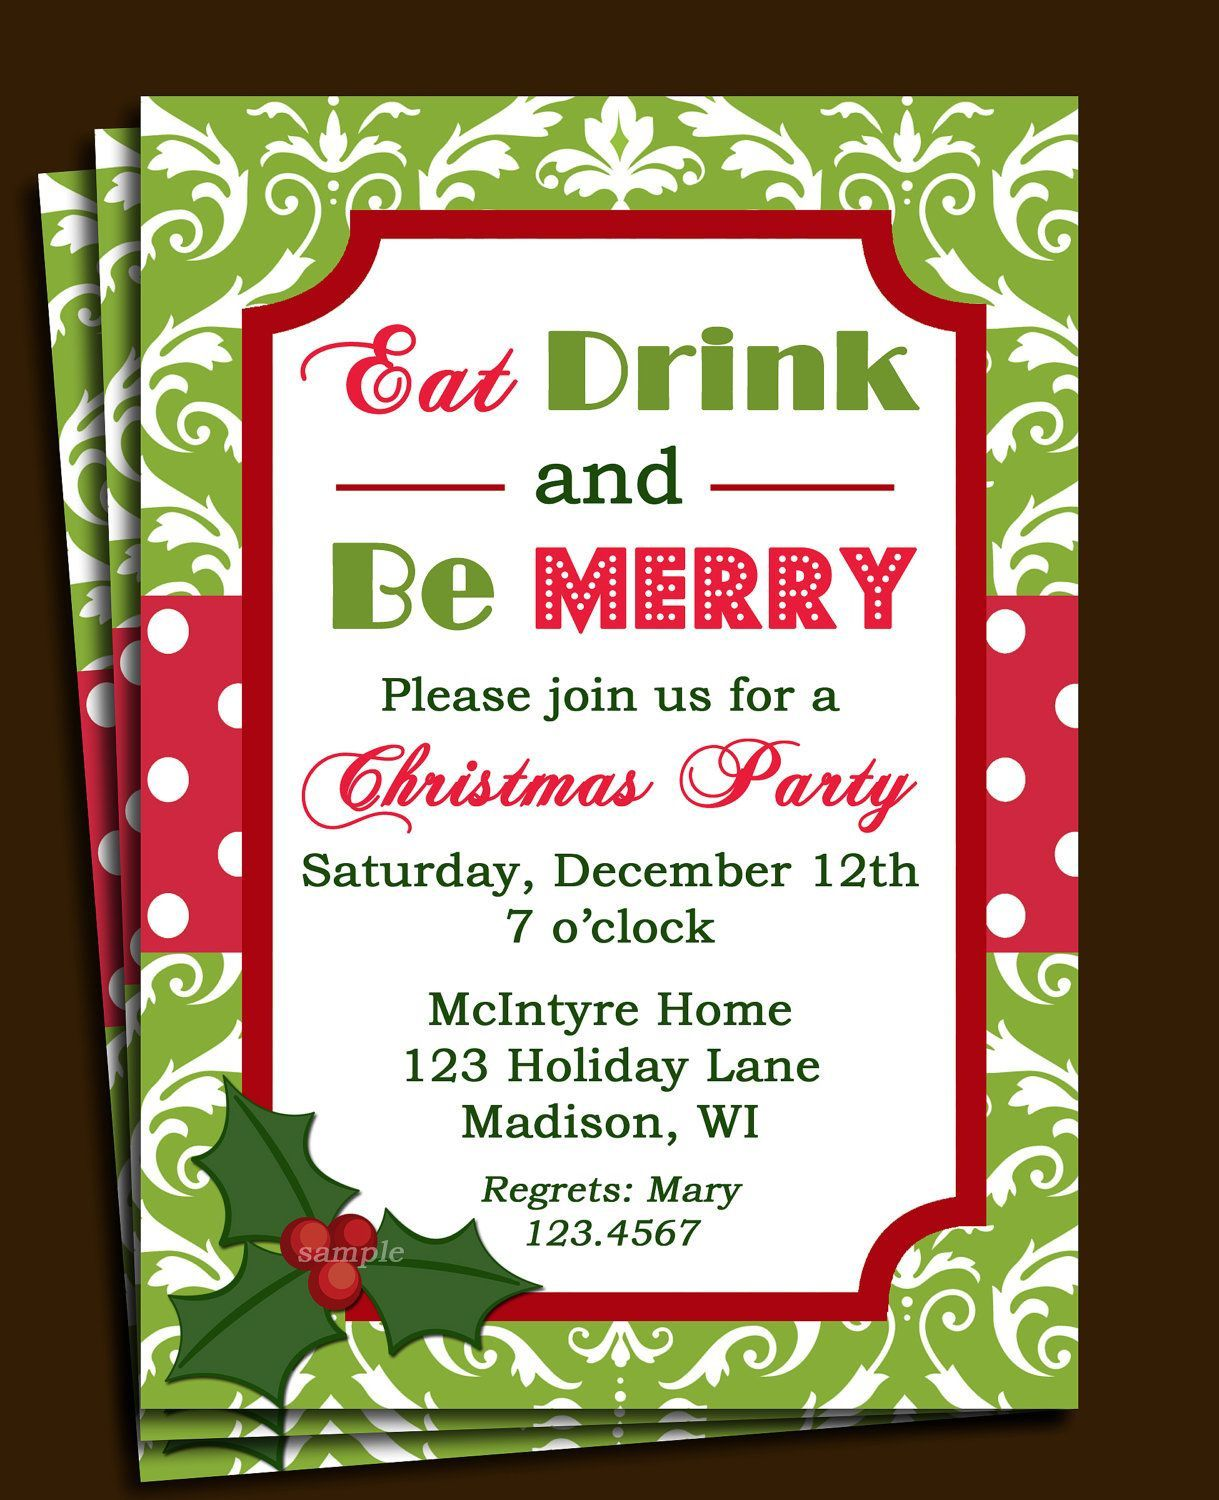 009 Best Christma Party Invite Template Word High Def  Holiday Free Invitation Wording ExampleFull